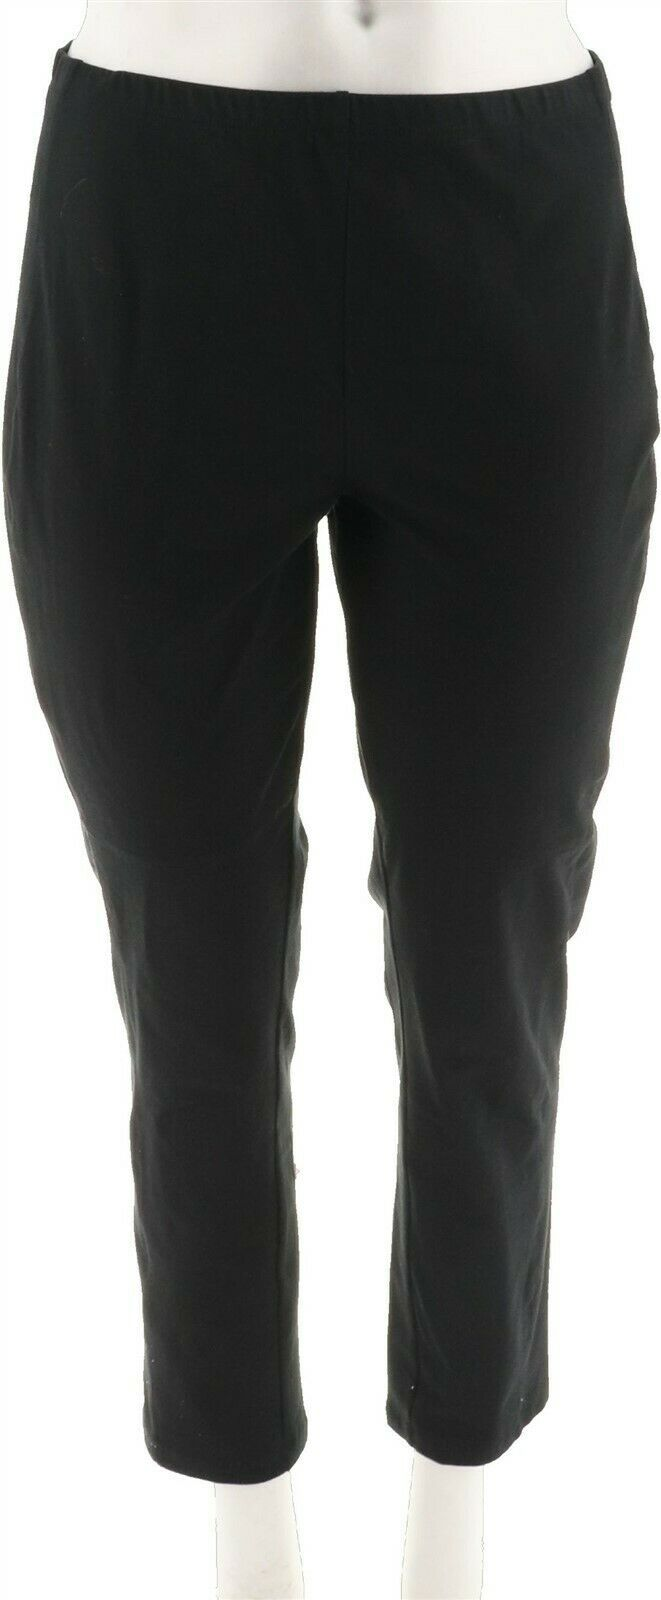 Primary image for Women with Control Slim Leg Ankle Pants Front Stretch Seam Black M NEW A294158